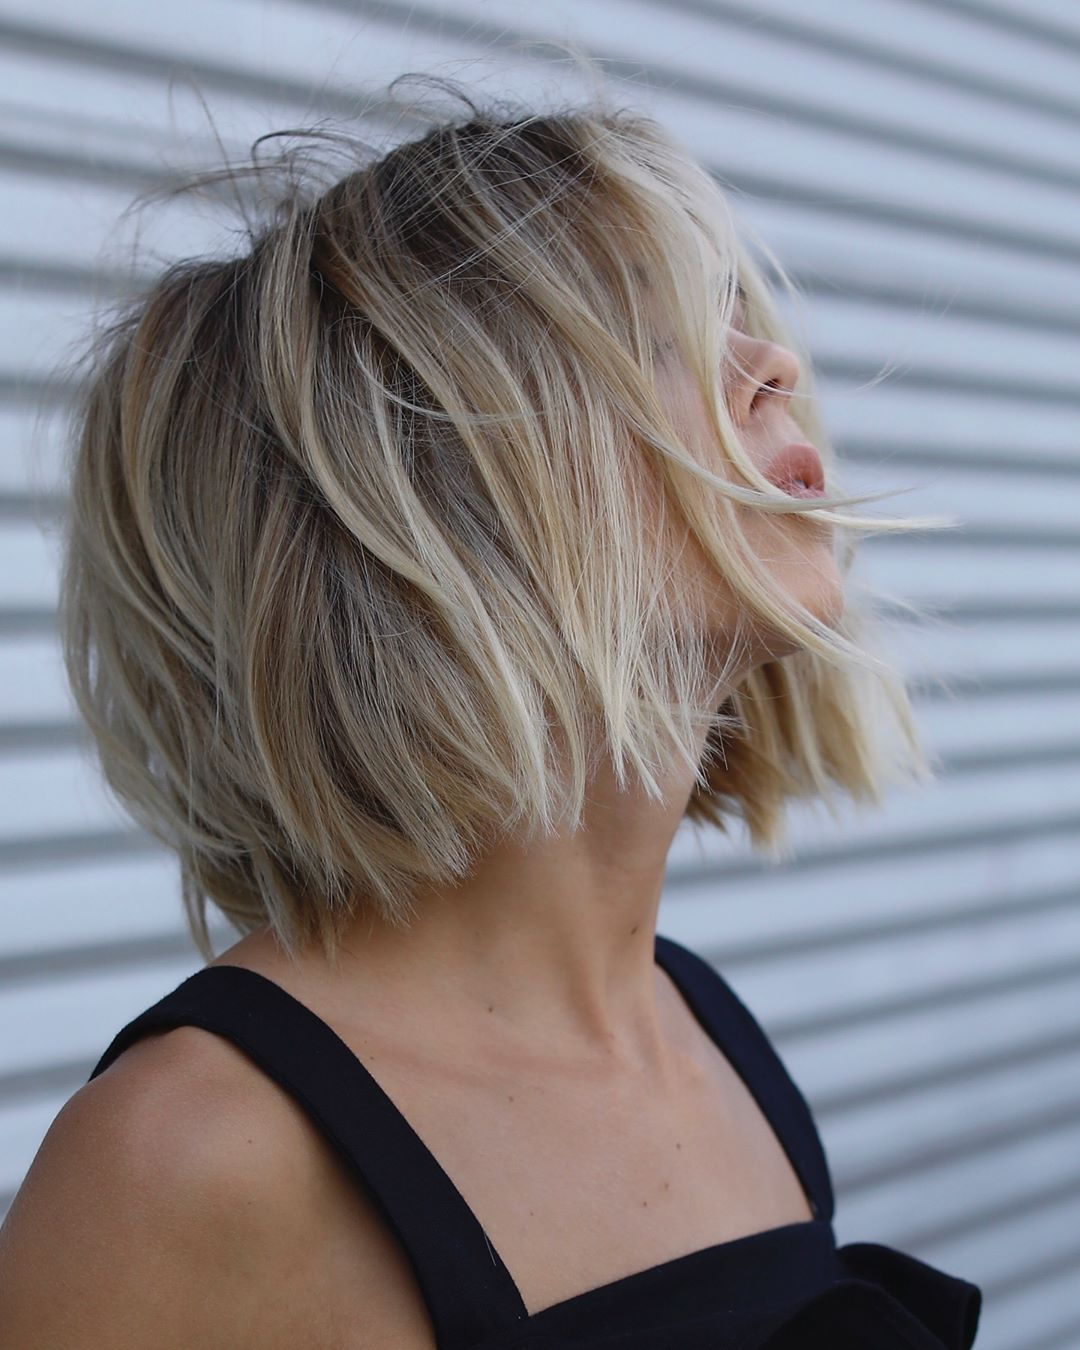 10 Easy Short Bob Haircuts for Thick Hair - Women Short Hair Styles 2019 adca54174113